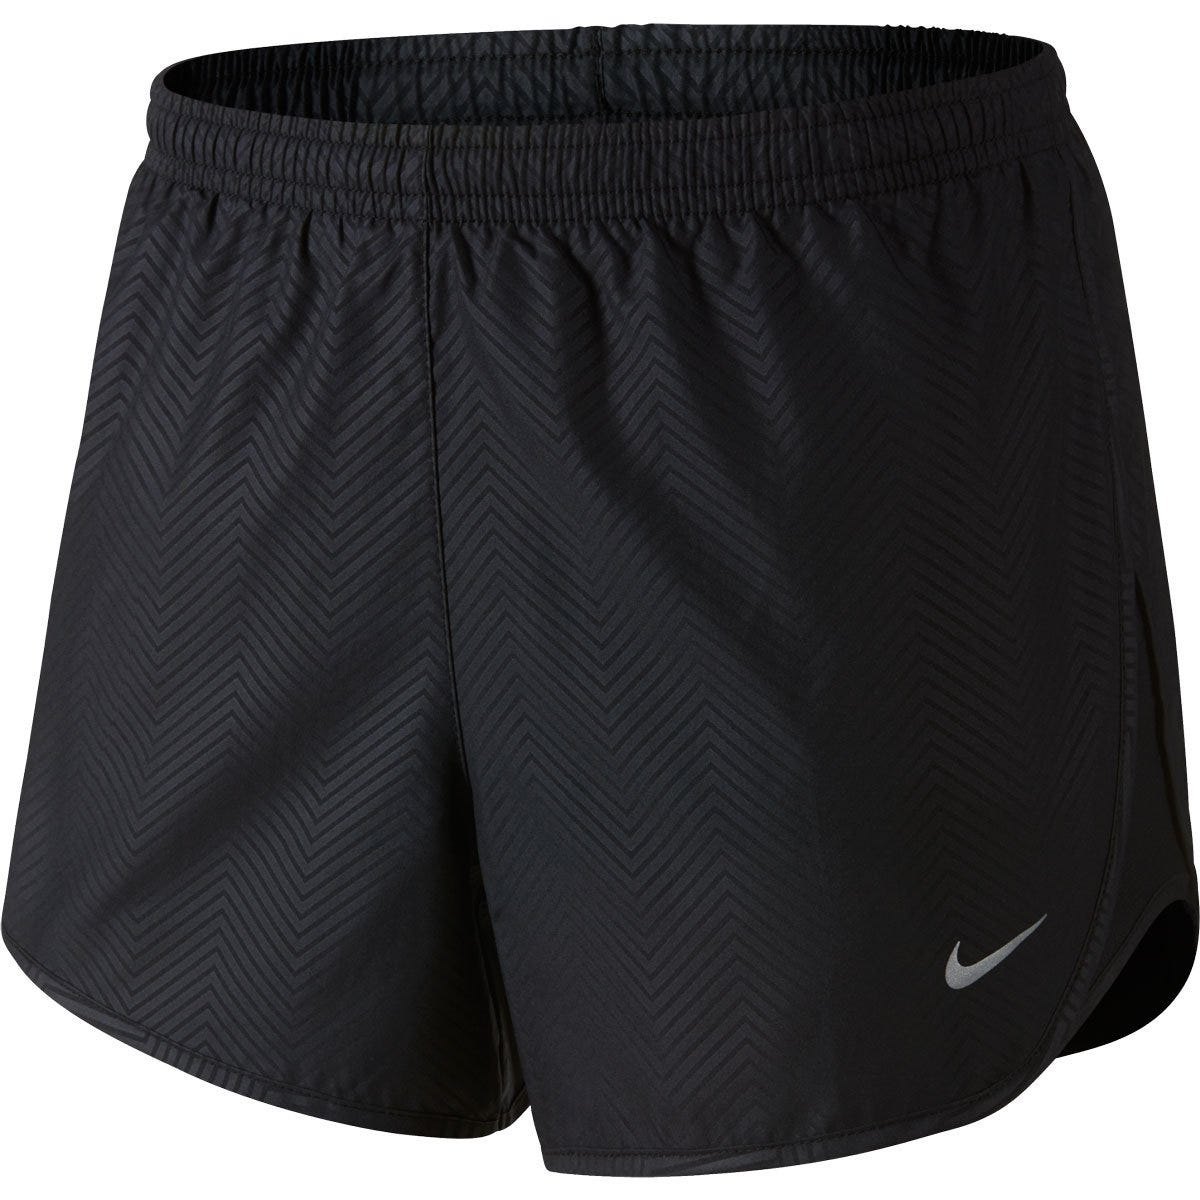 Tempo Modern Embossed Softball Shorts by Nike; Womens XS Black/Silver